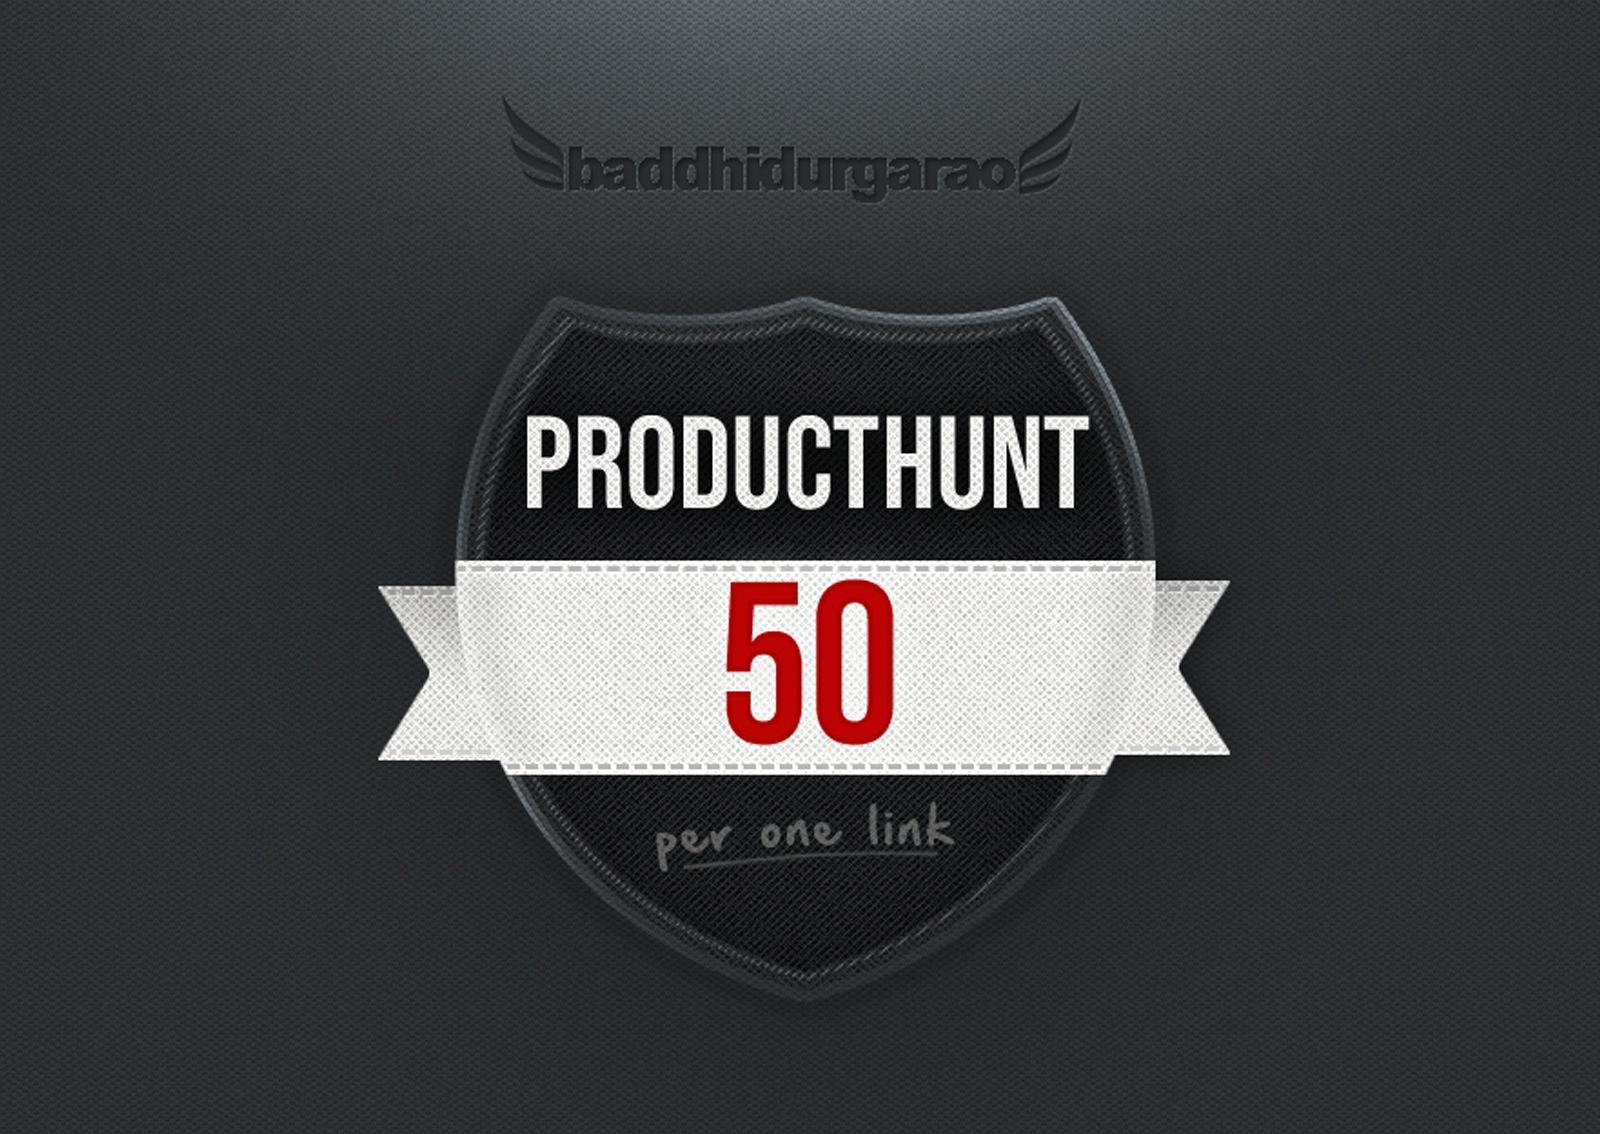 Get 50 Producthunt Upvotes